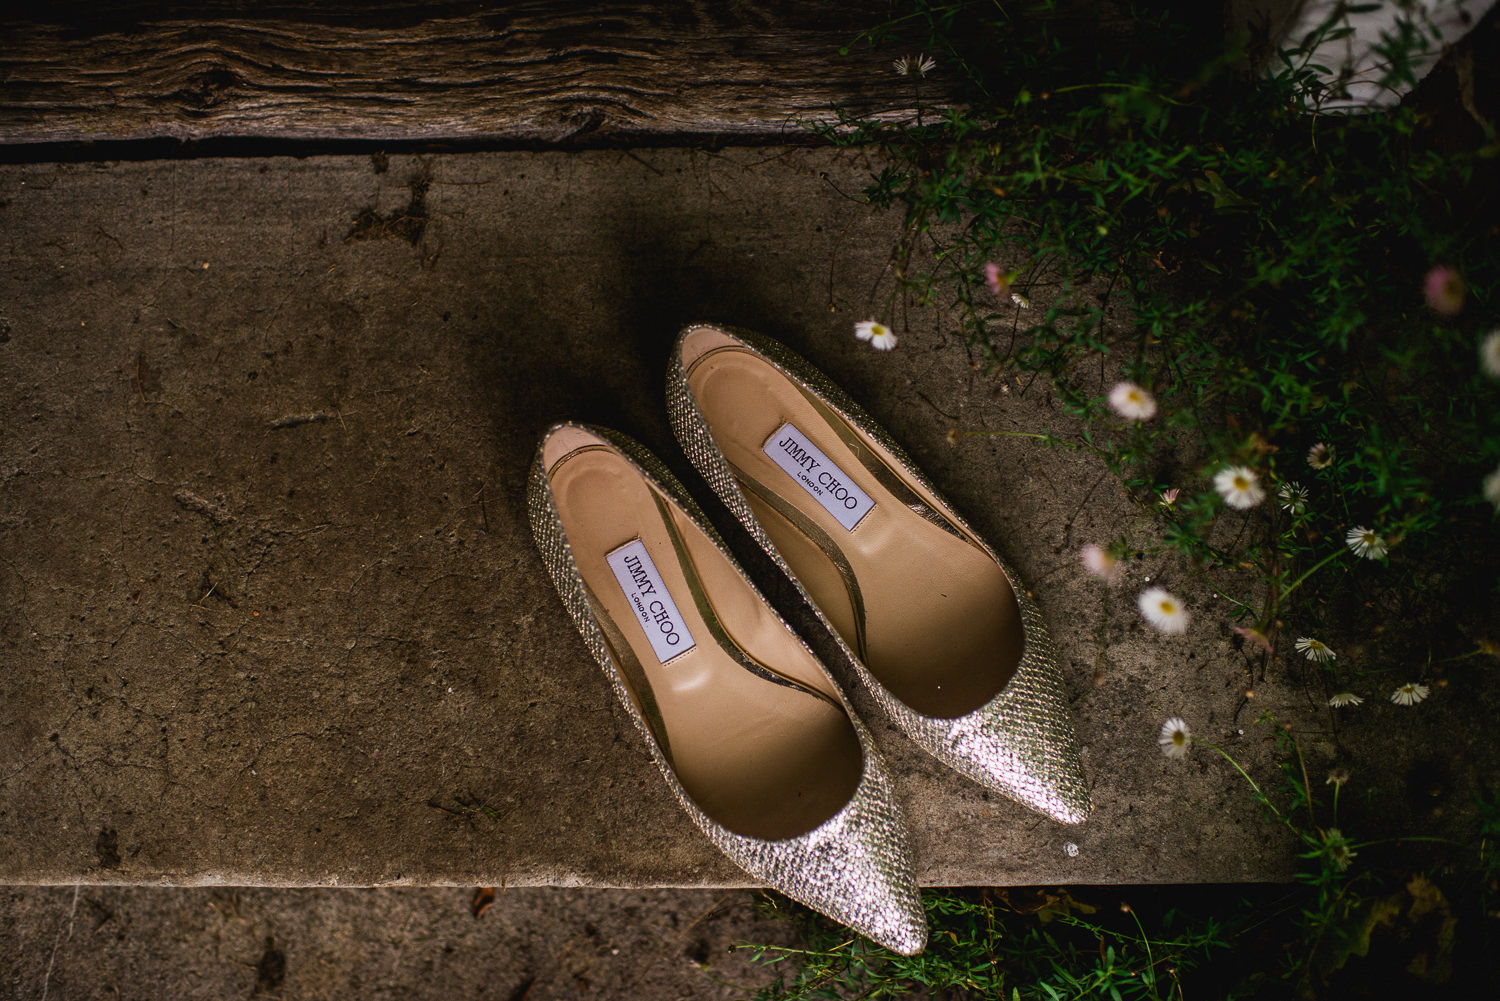 Jimmy Choo Shoes on step